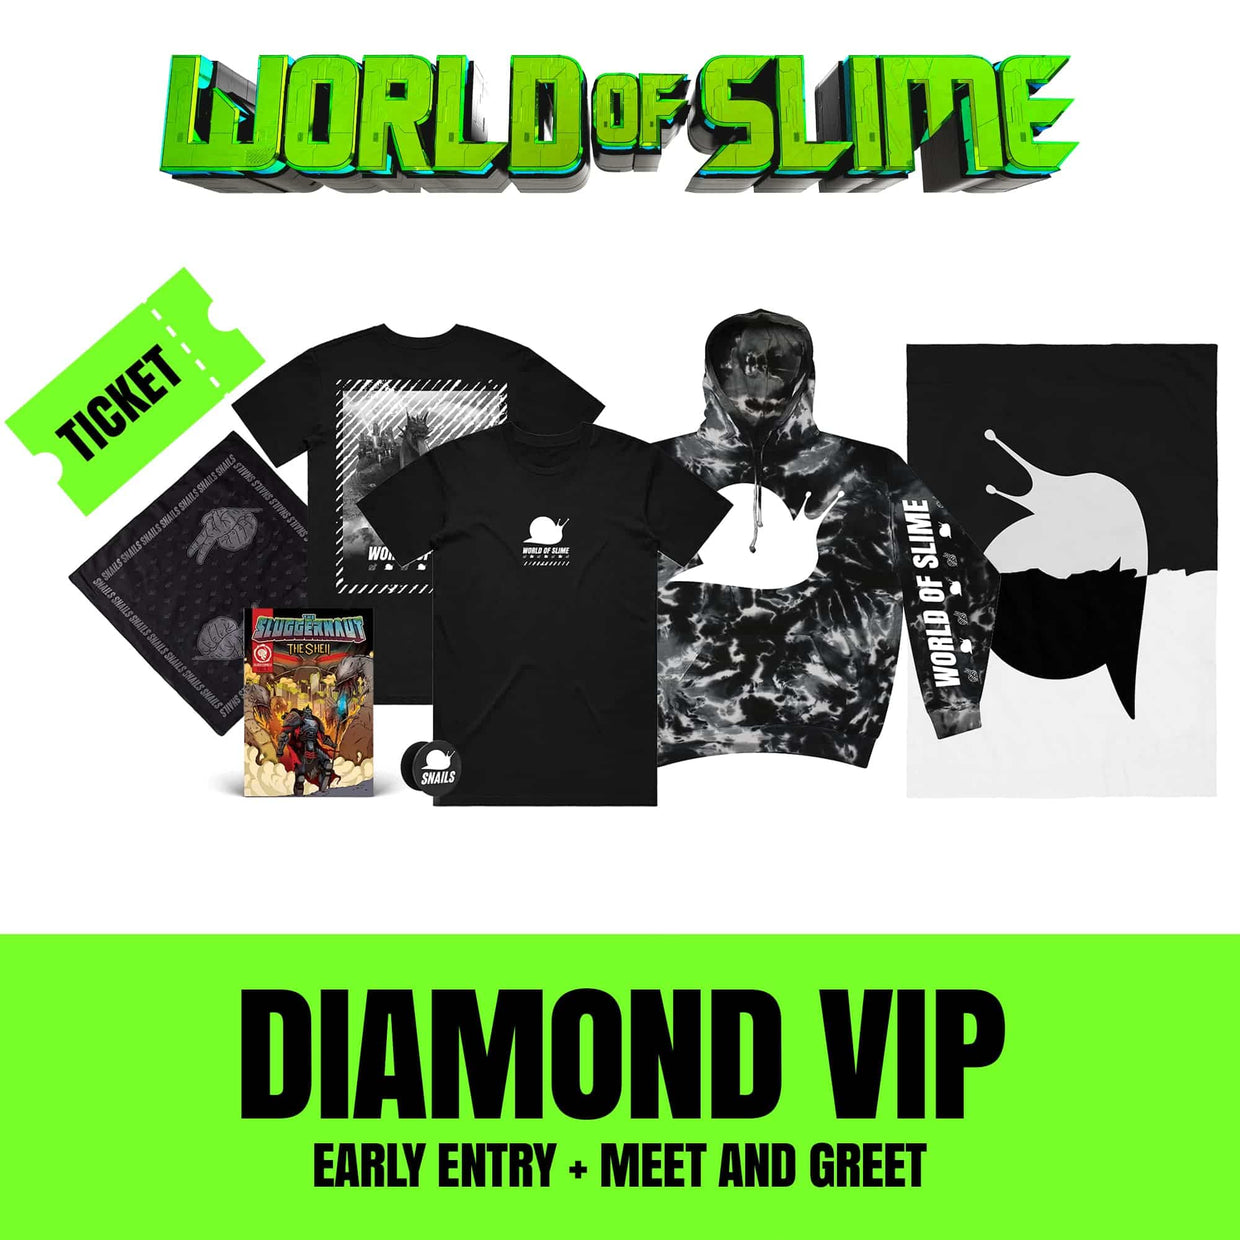 World Of Slime Tour - Chicago, IL - 12/28